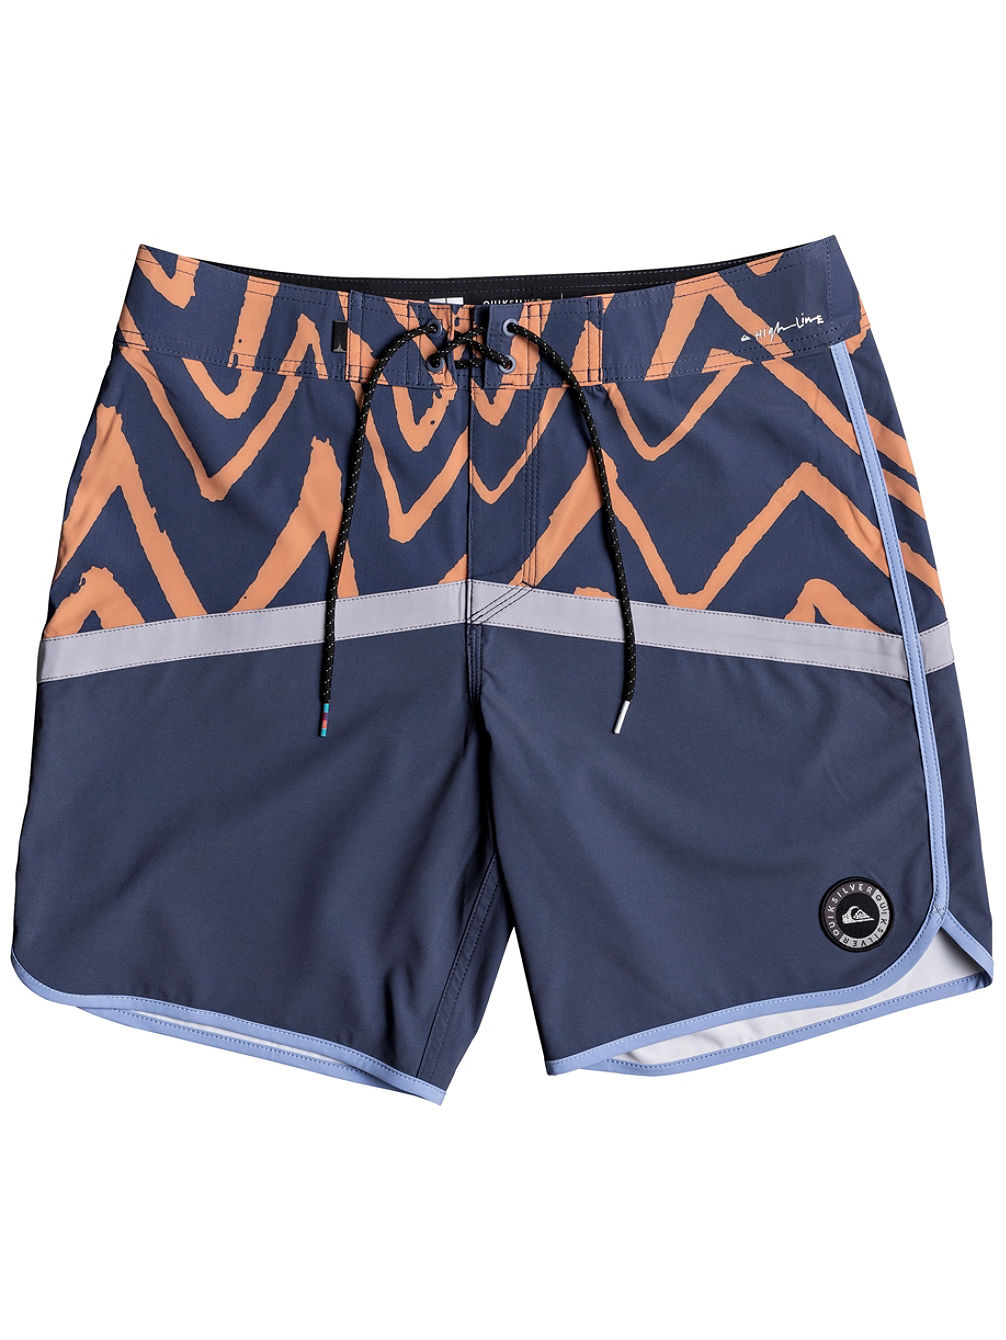 "Highline Techtonics 18"" Boardshorts"